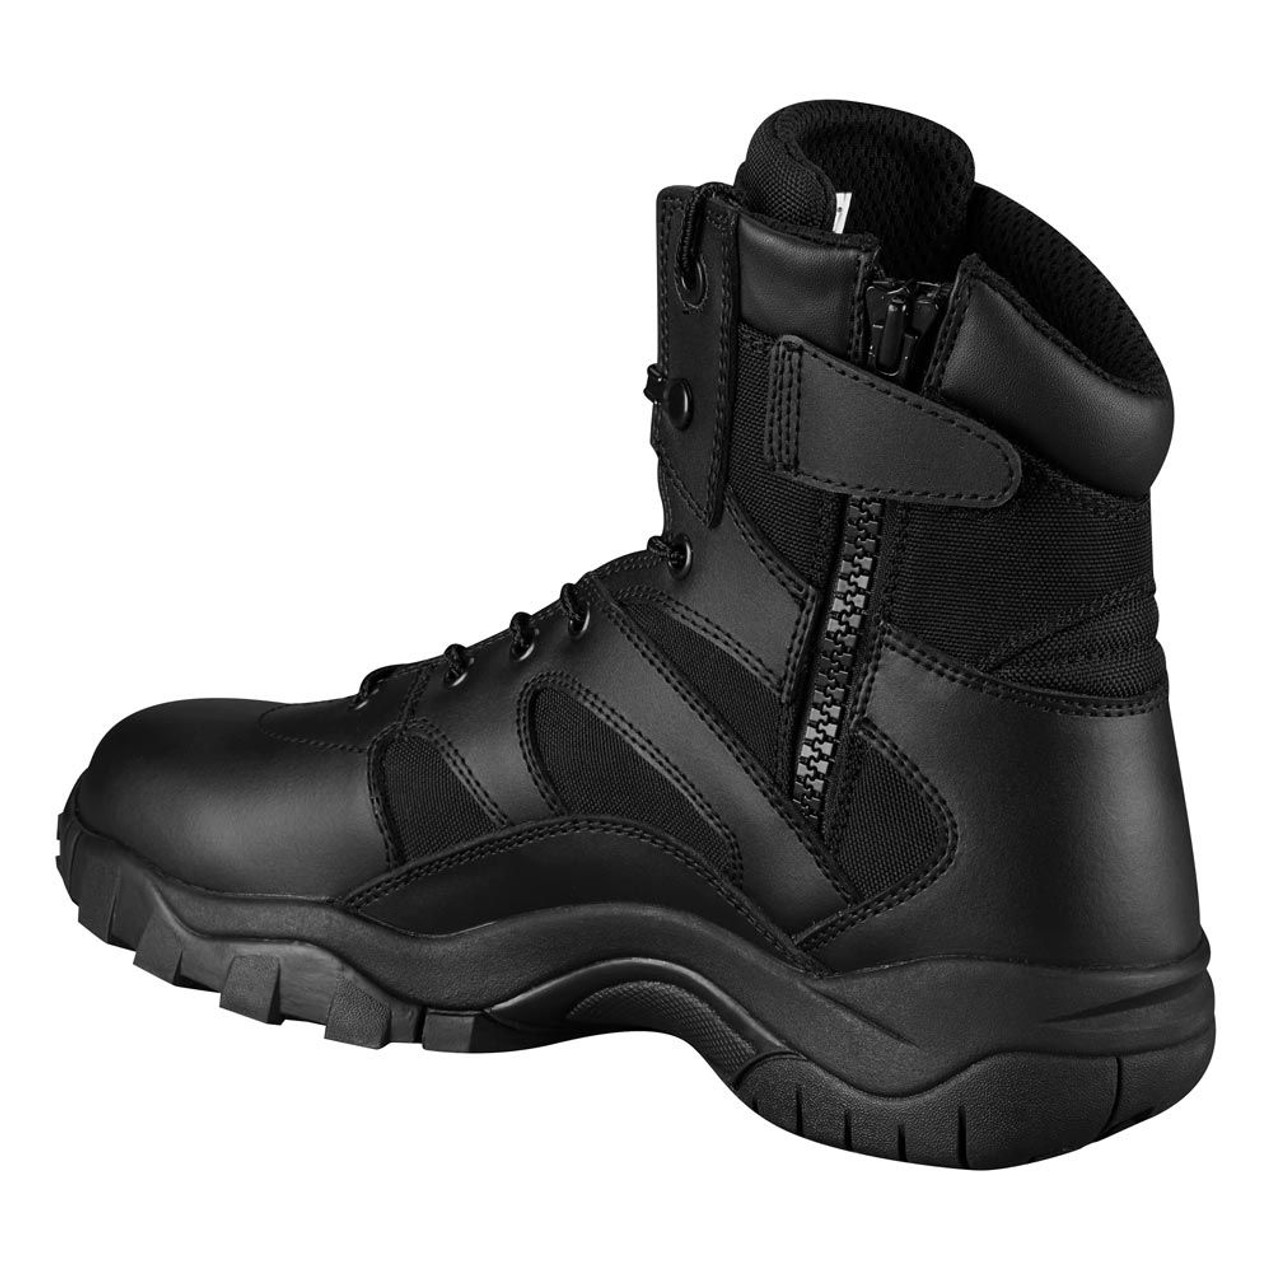 "PROPPER 6"" TACTICAL DUTY SIDE-ZIP BOOTS F4522 / BLACK"